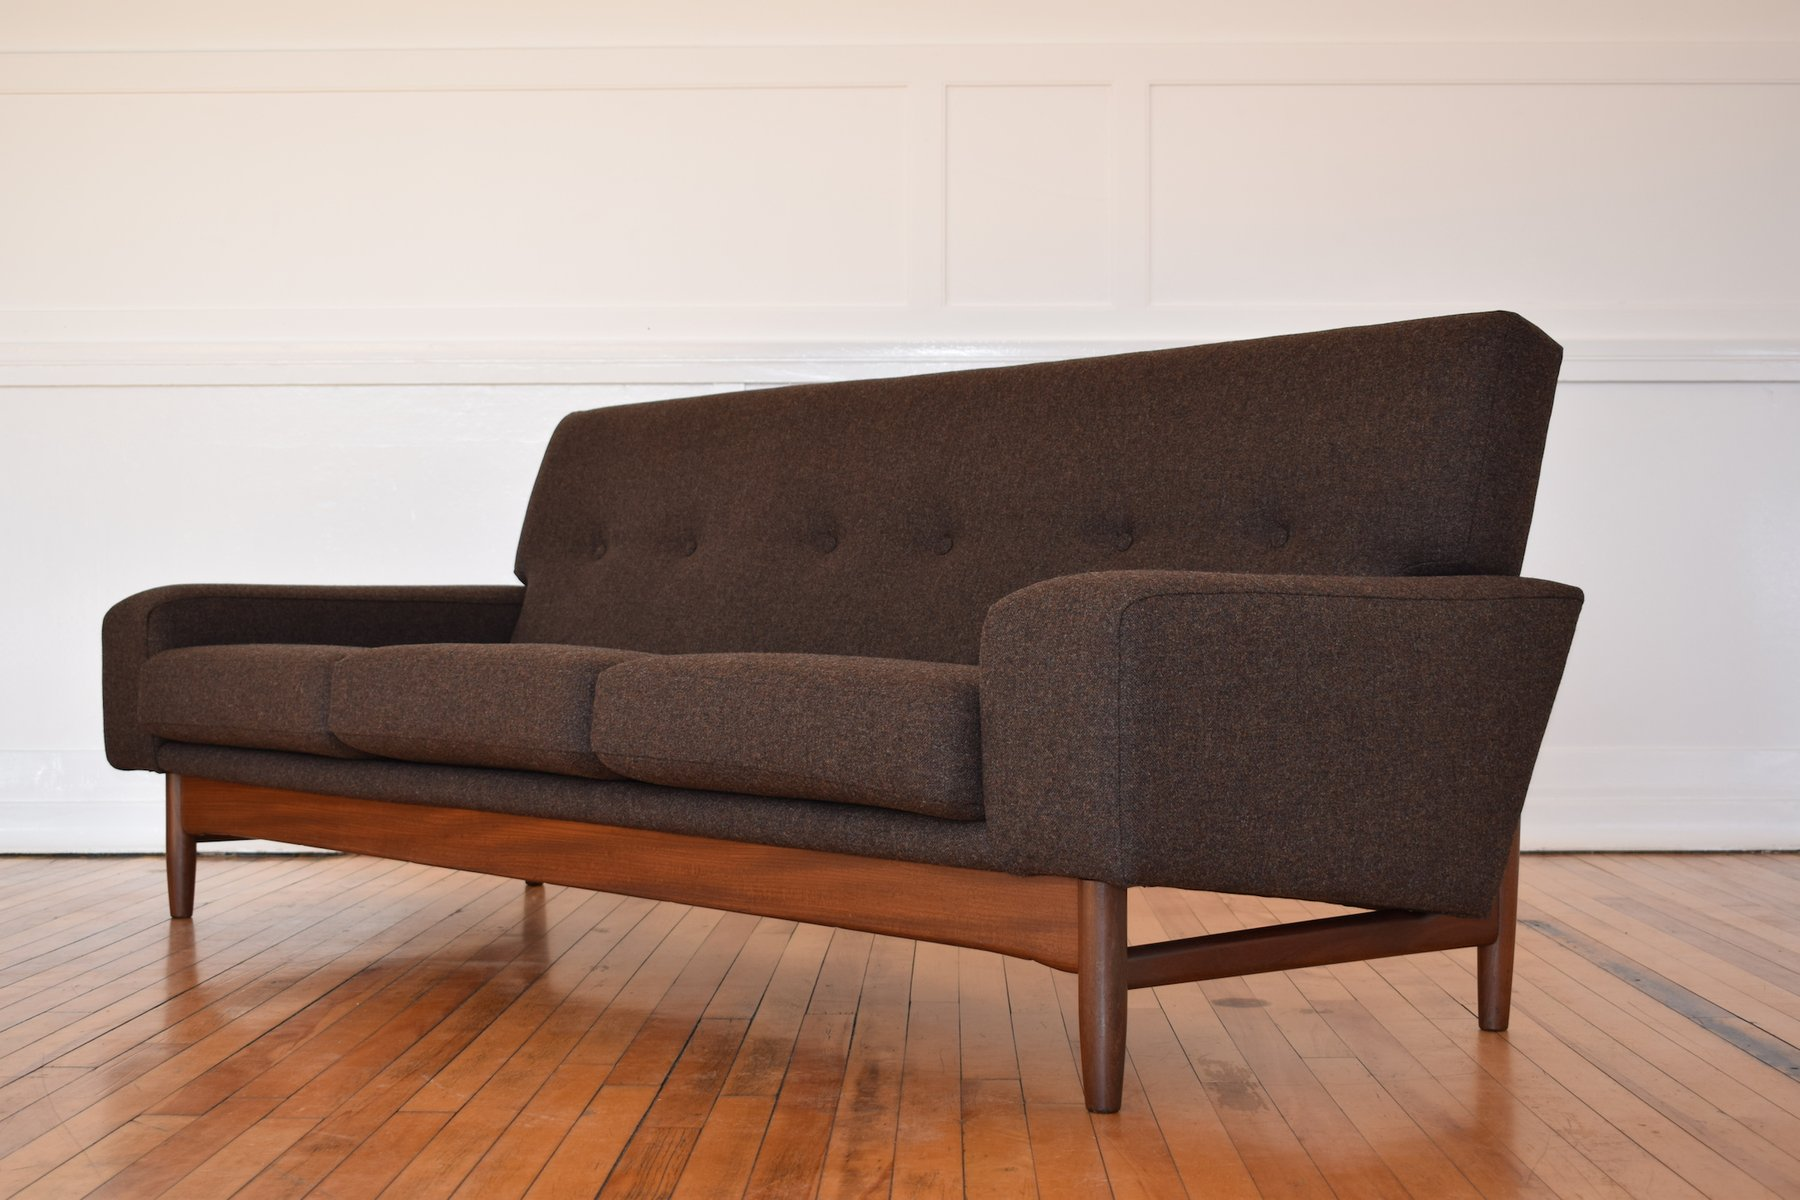 teak sofa von ib kofod larsen f r g plan 1960er bei pamono kaufen. Black Bedroom Furniture Sets. Home Design Ideas